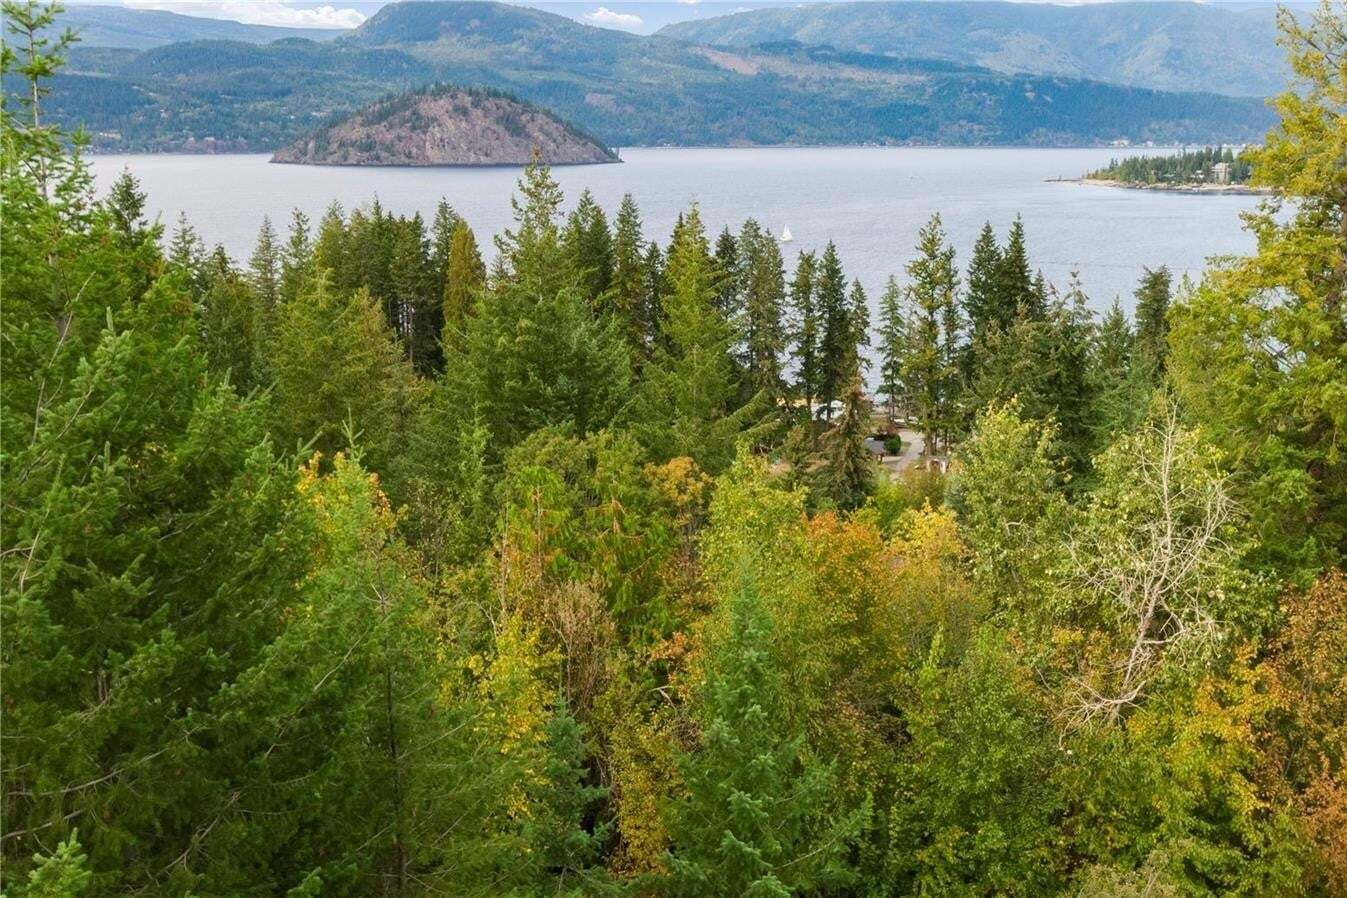 Residential property for sale at Lot 50 Sunrise Blvd Blind Bay British Columbia - MLS: 10216987